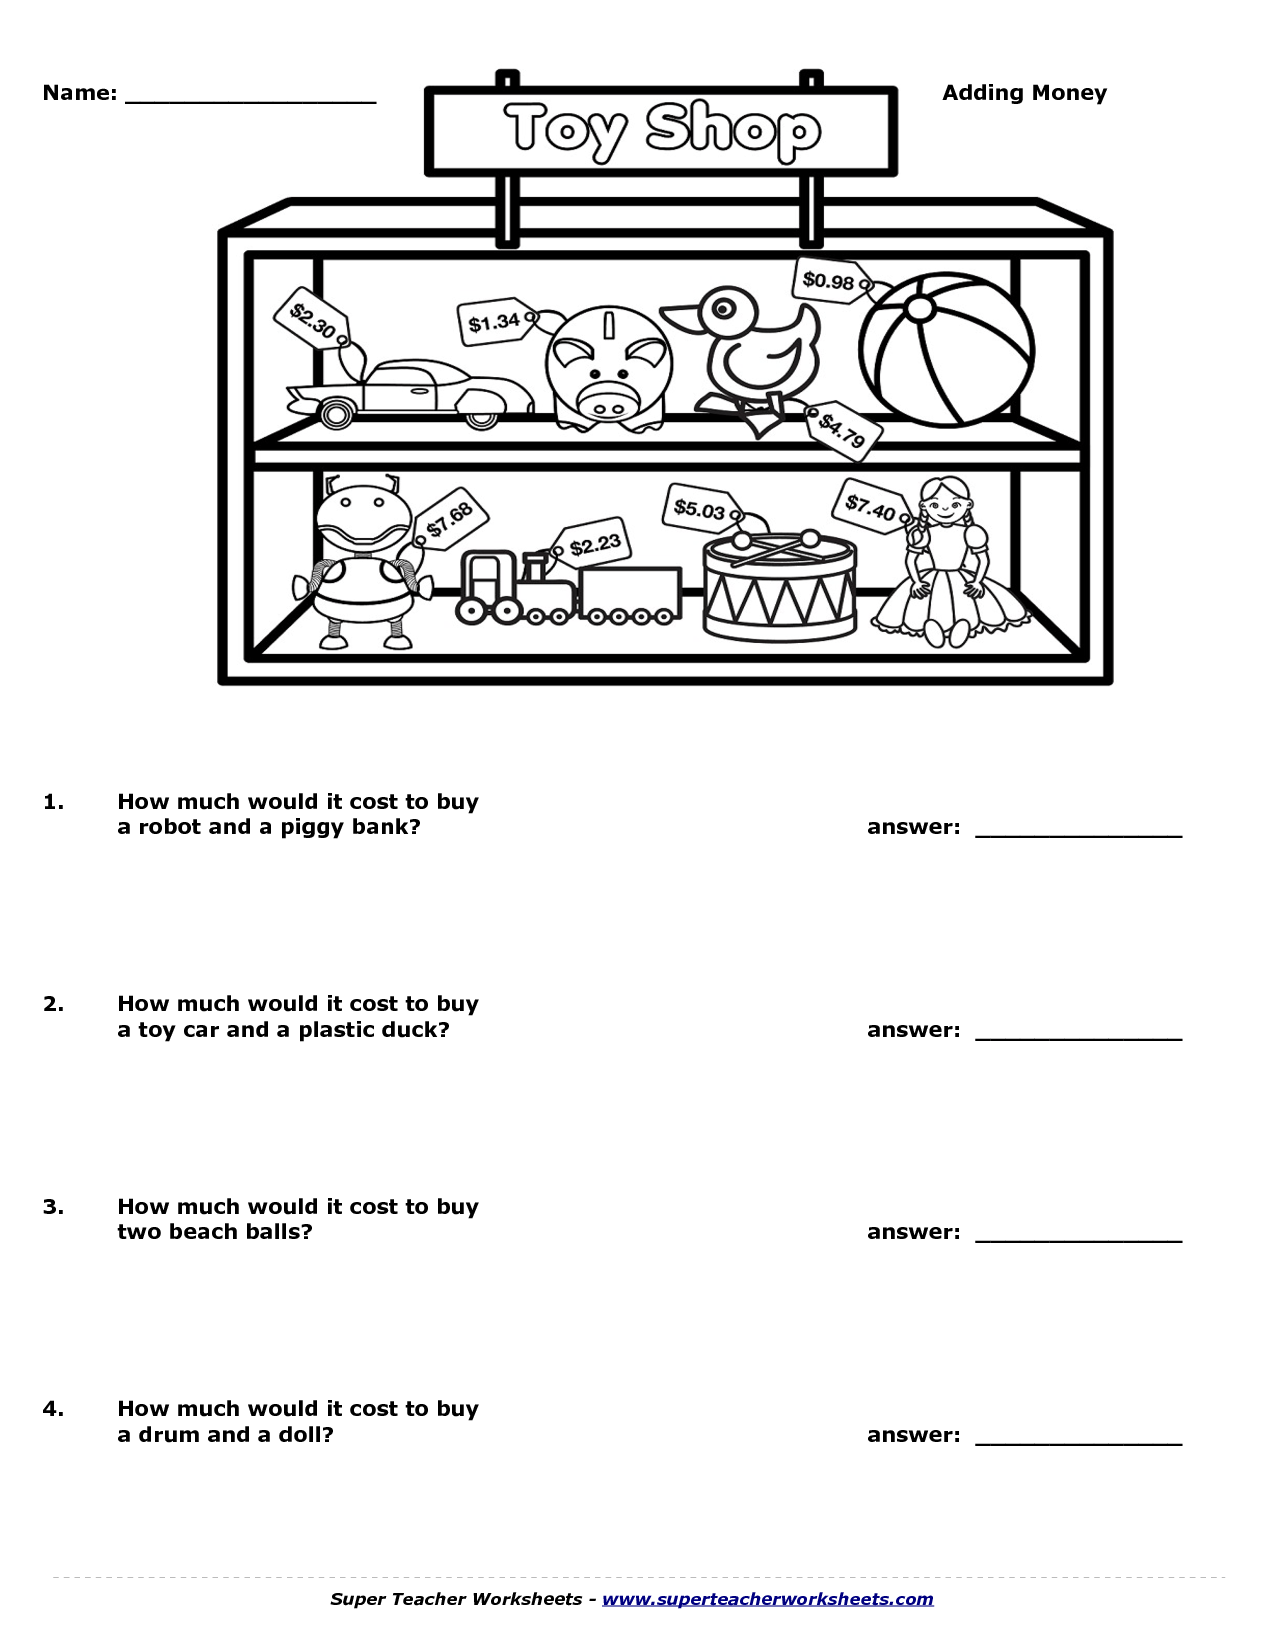 13 Best Images Of Super Teacher Worksheets Math Answers